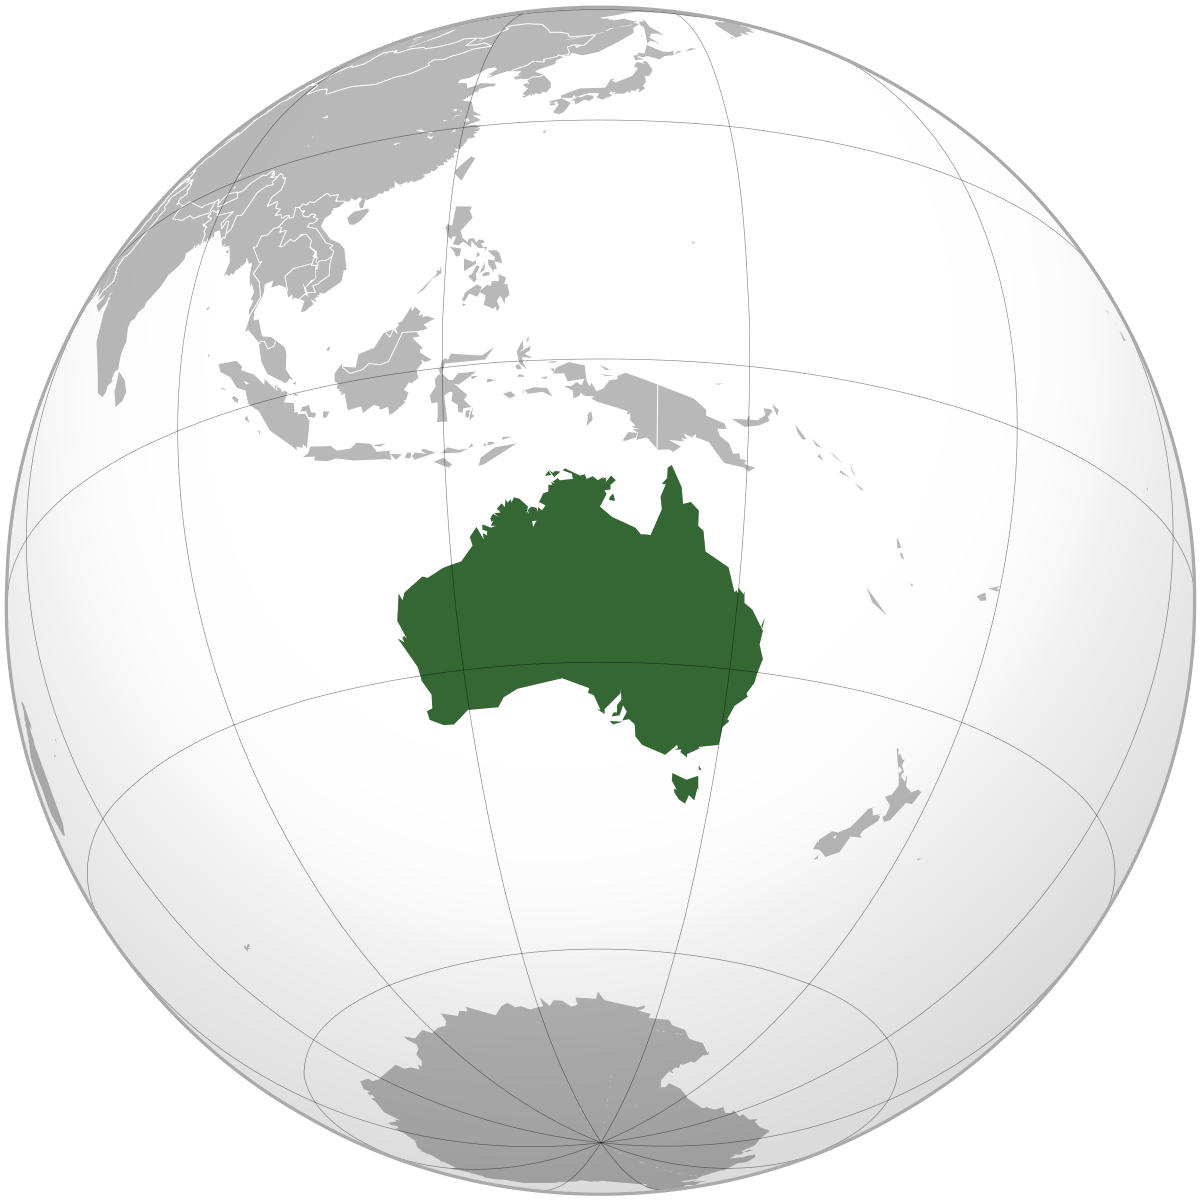 Support drawing lgbt discrimination. Rights in australia wikipedia